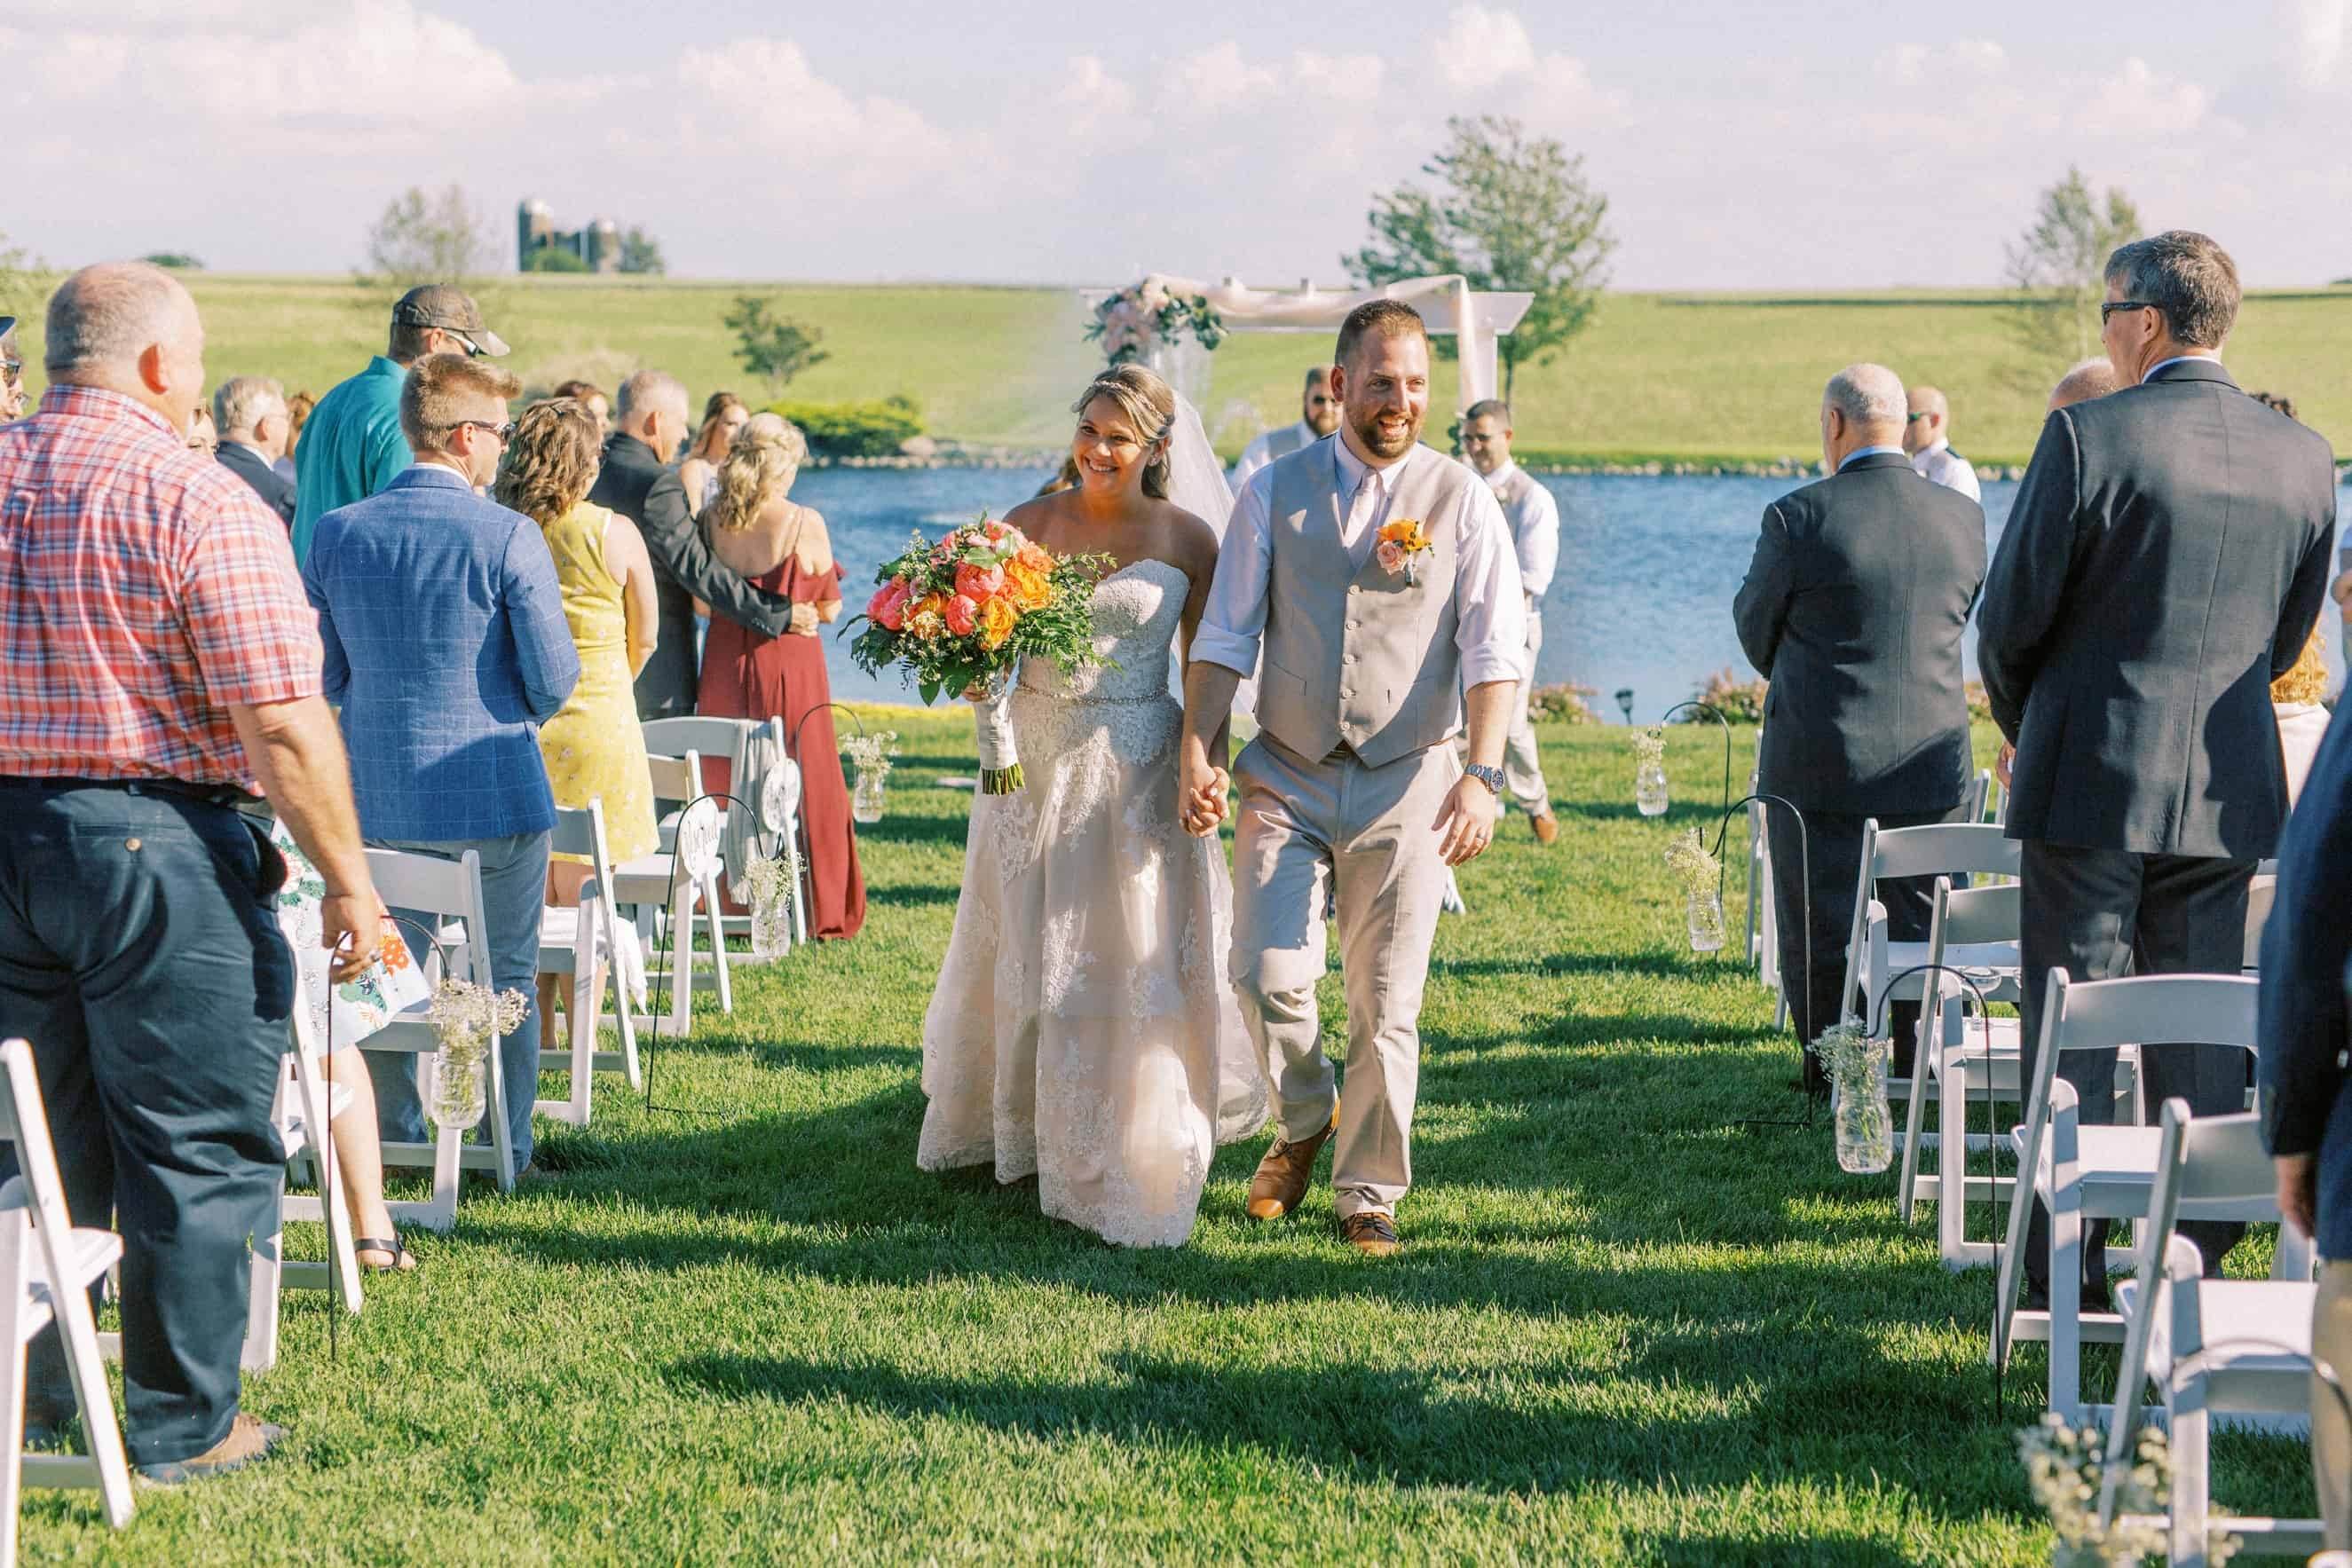 Outdoor wedding ceremony photos at Harvest View Barn at Hershey Farms